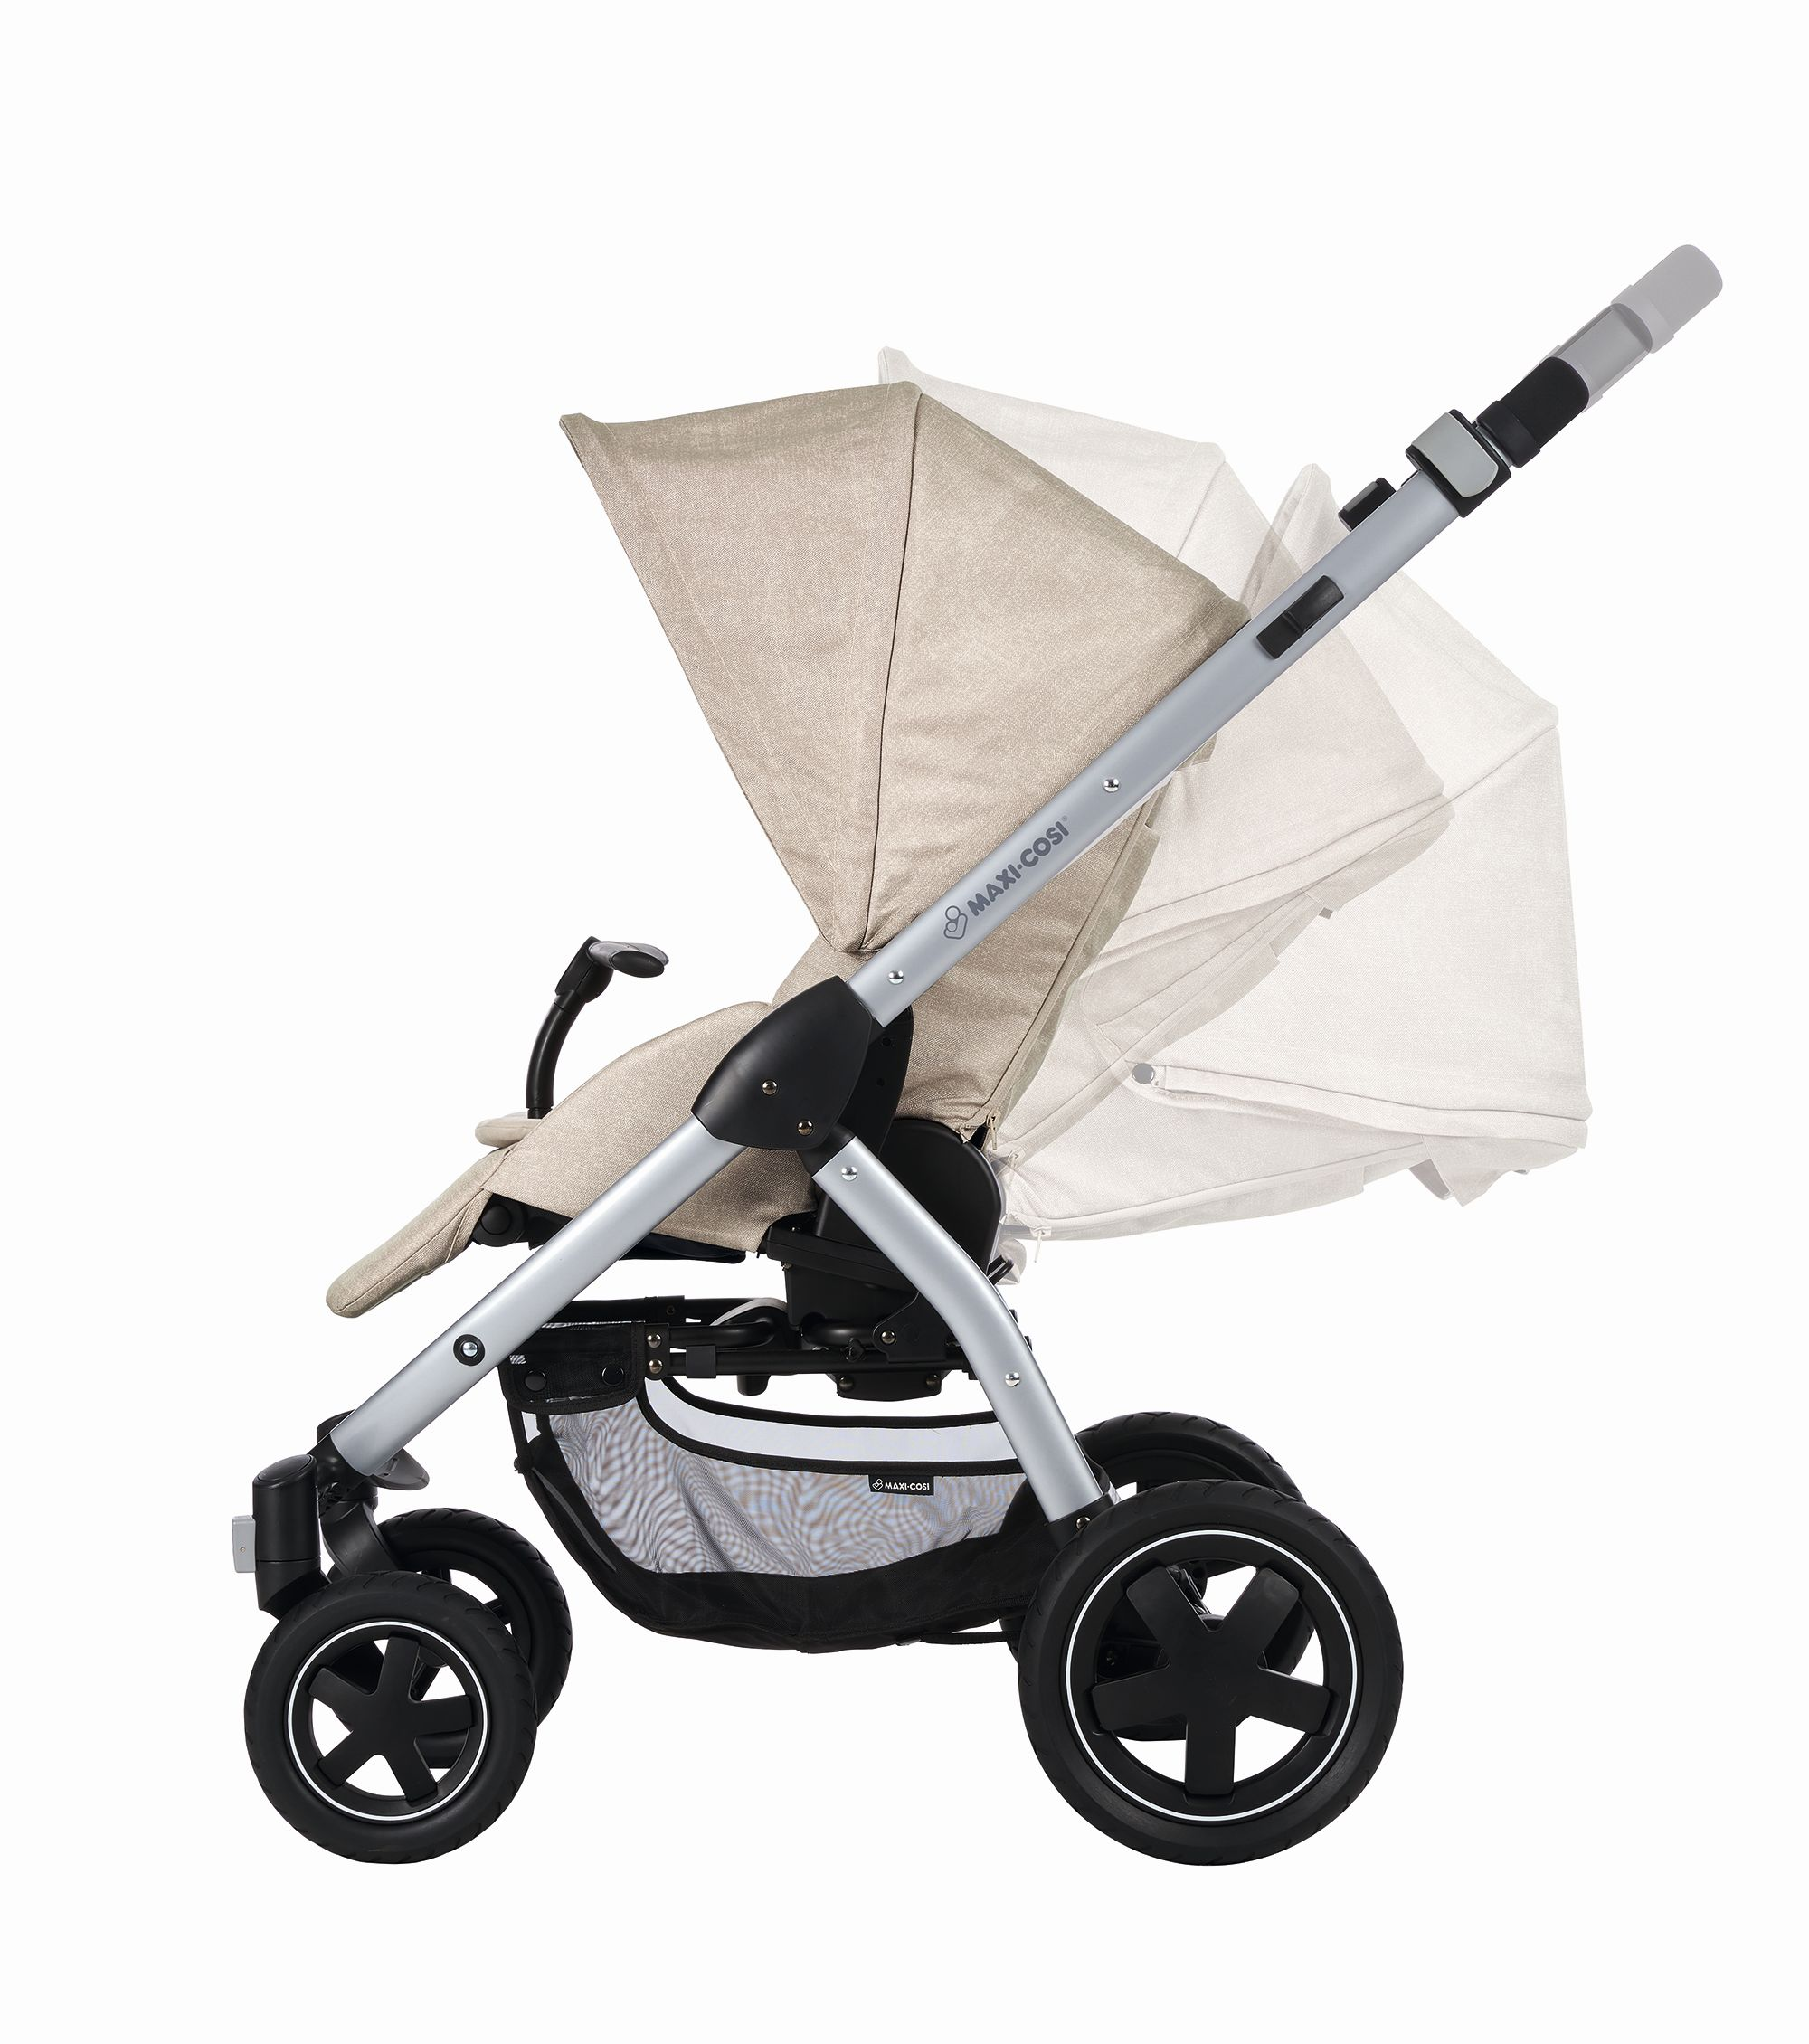 maxi cosi stroller stella 2019 nomad sand buy at. Black Bedroom Furniture Sets. Home Design Ideas